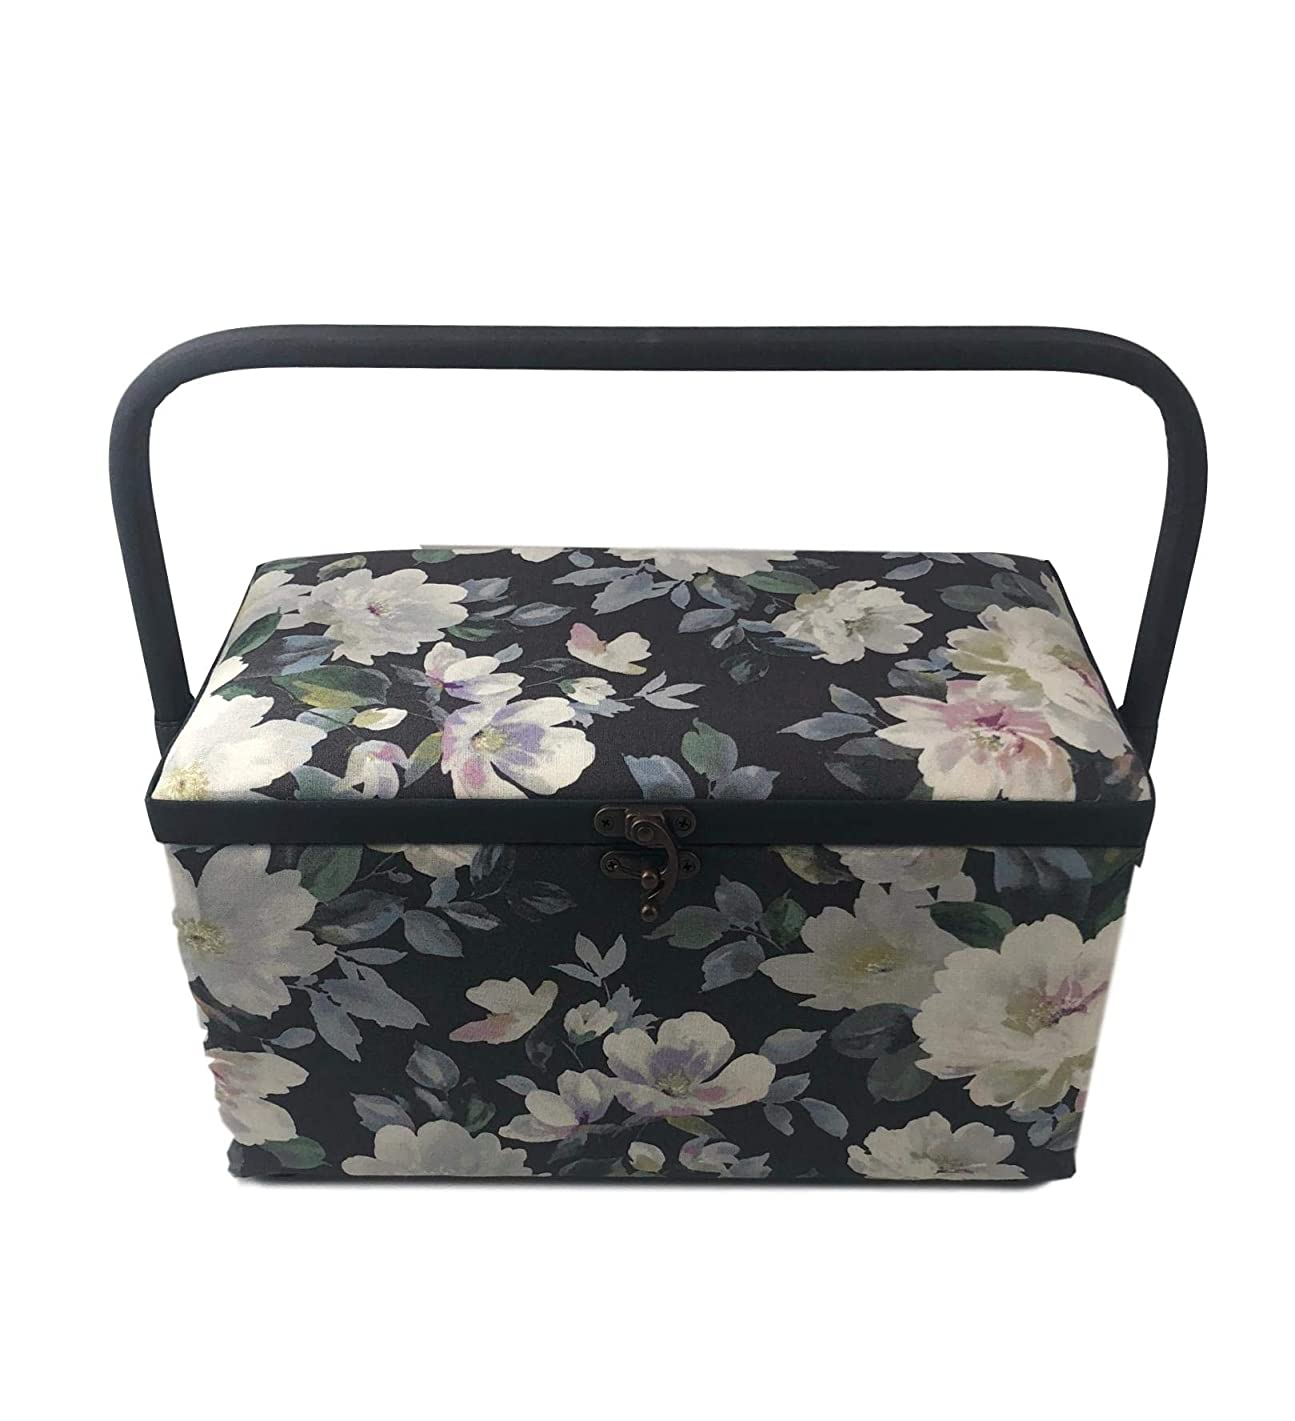 Dritz St Jane Sewing Basket Medium Rectangle Sewing Box 11x6x6 Inches (Gray Floral)